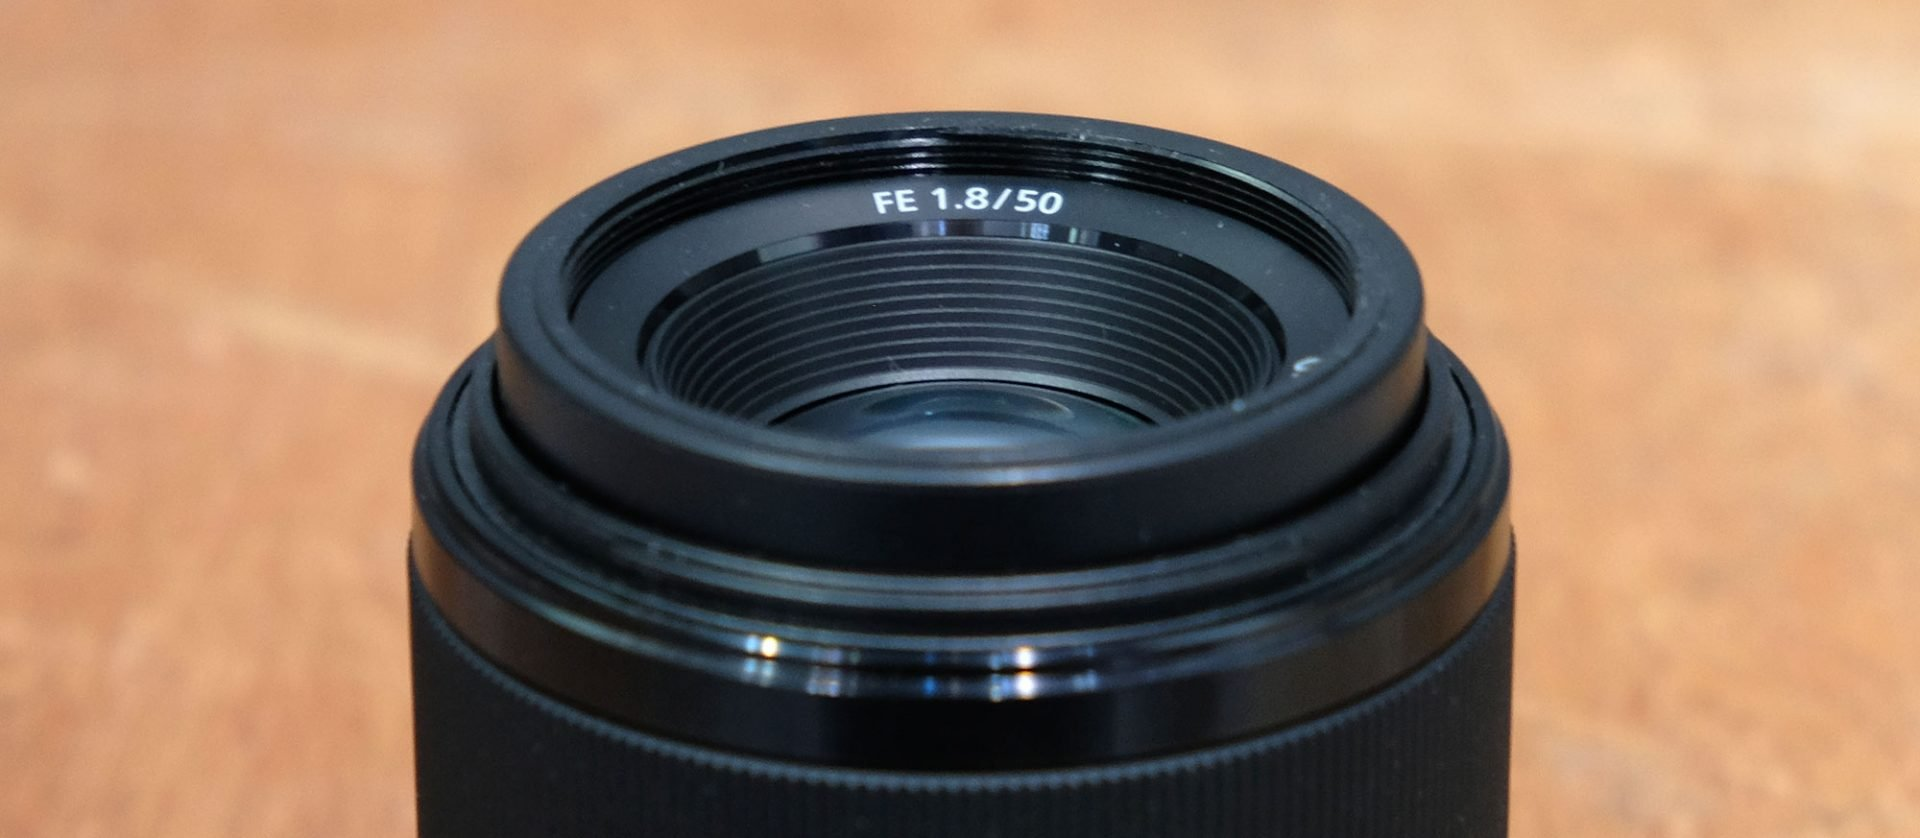 Sony-fe-50mm-f1-8-header1